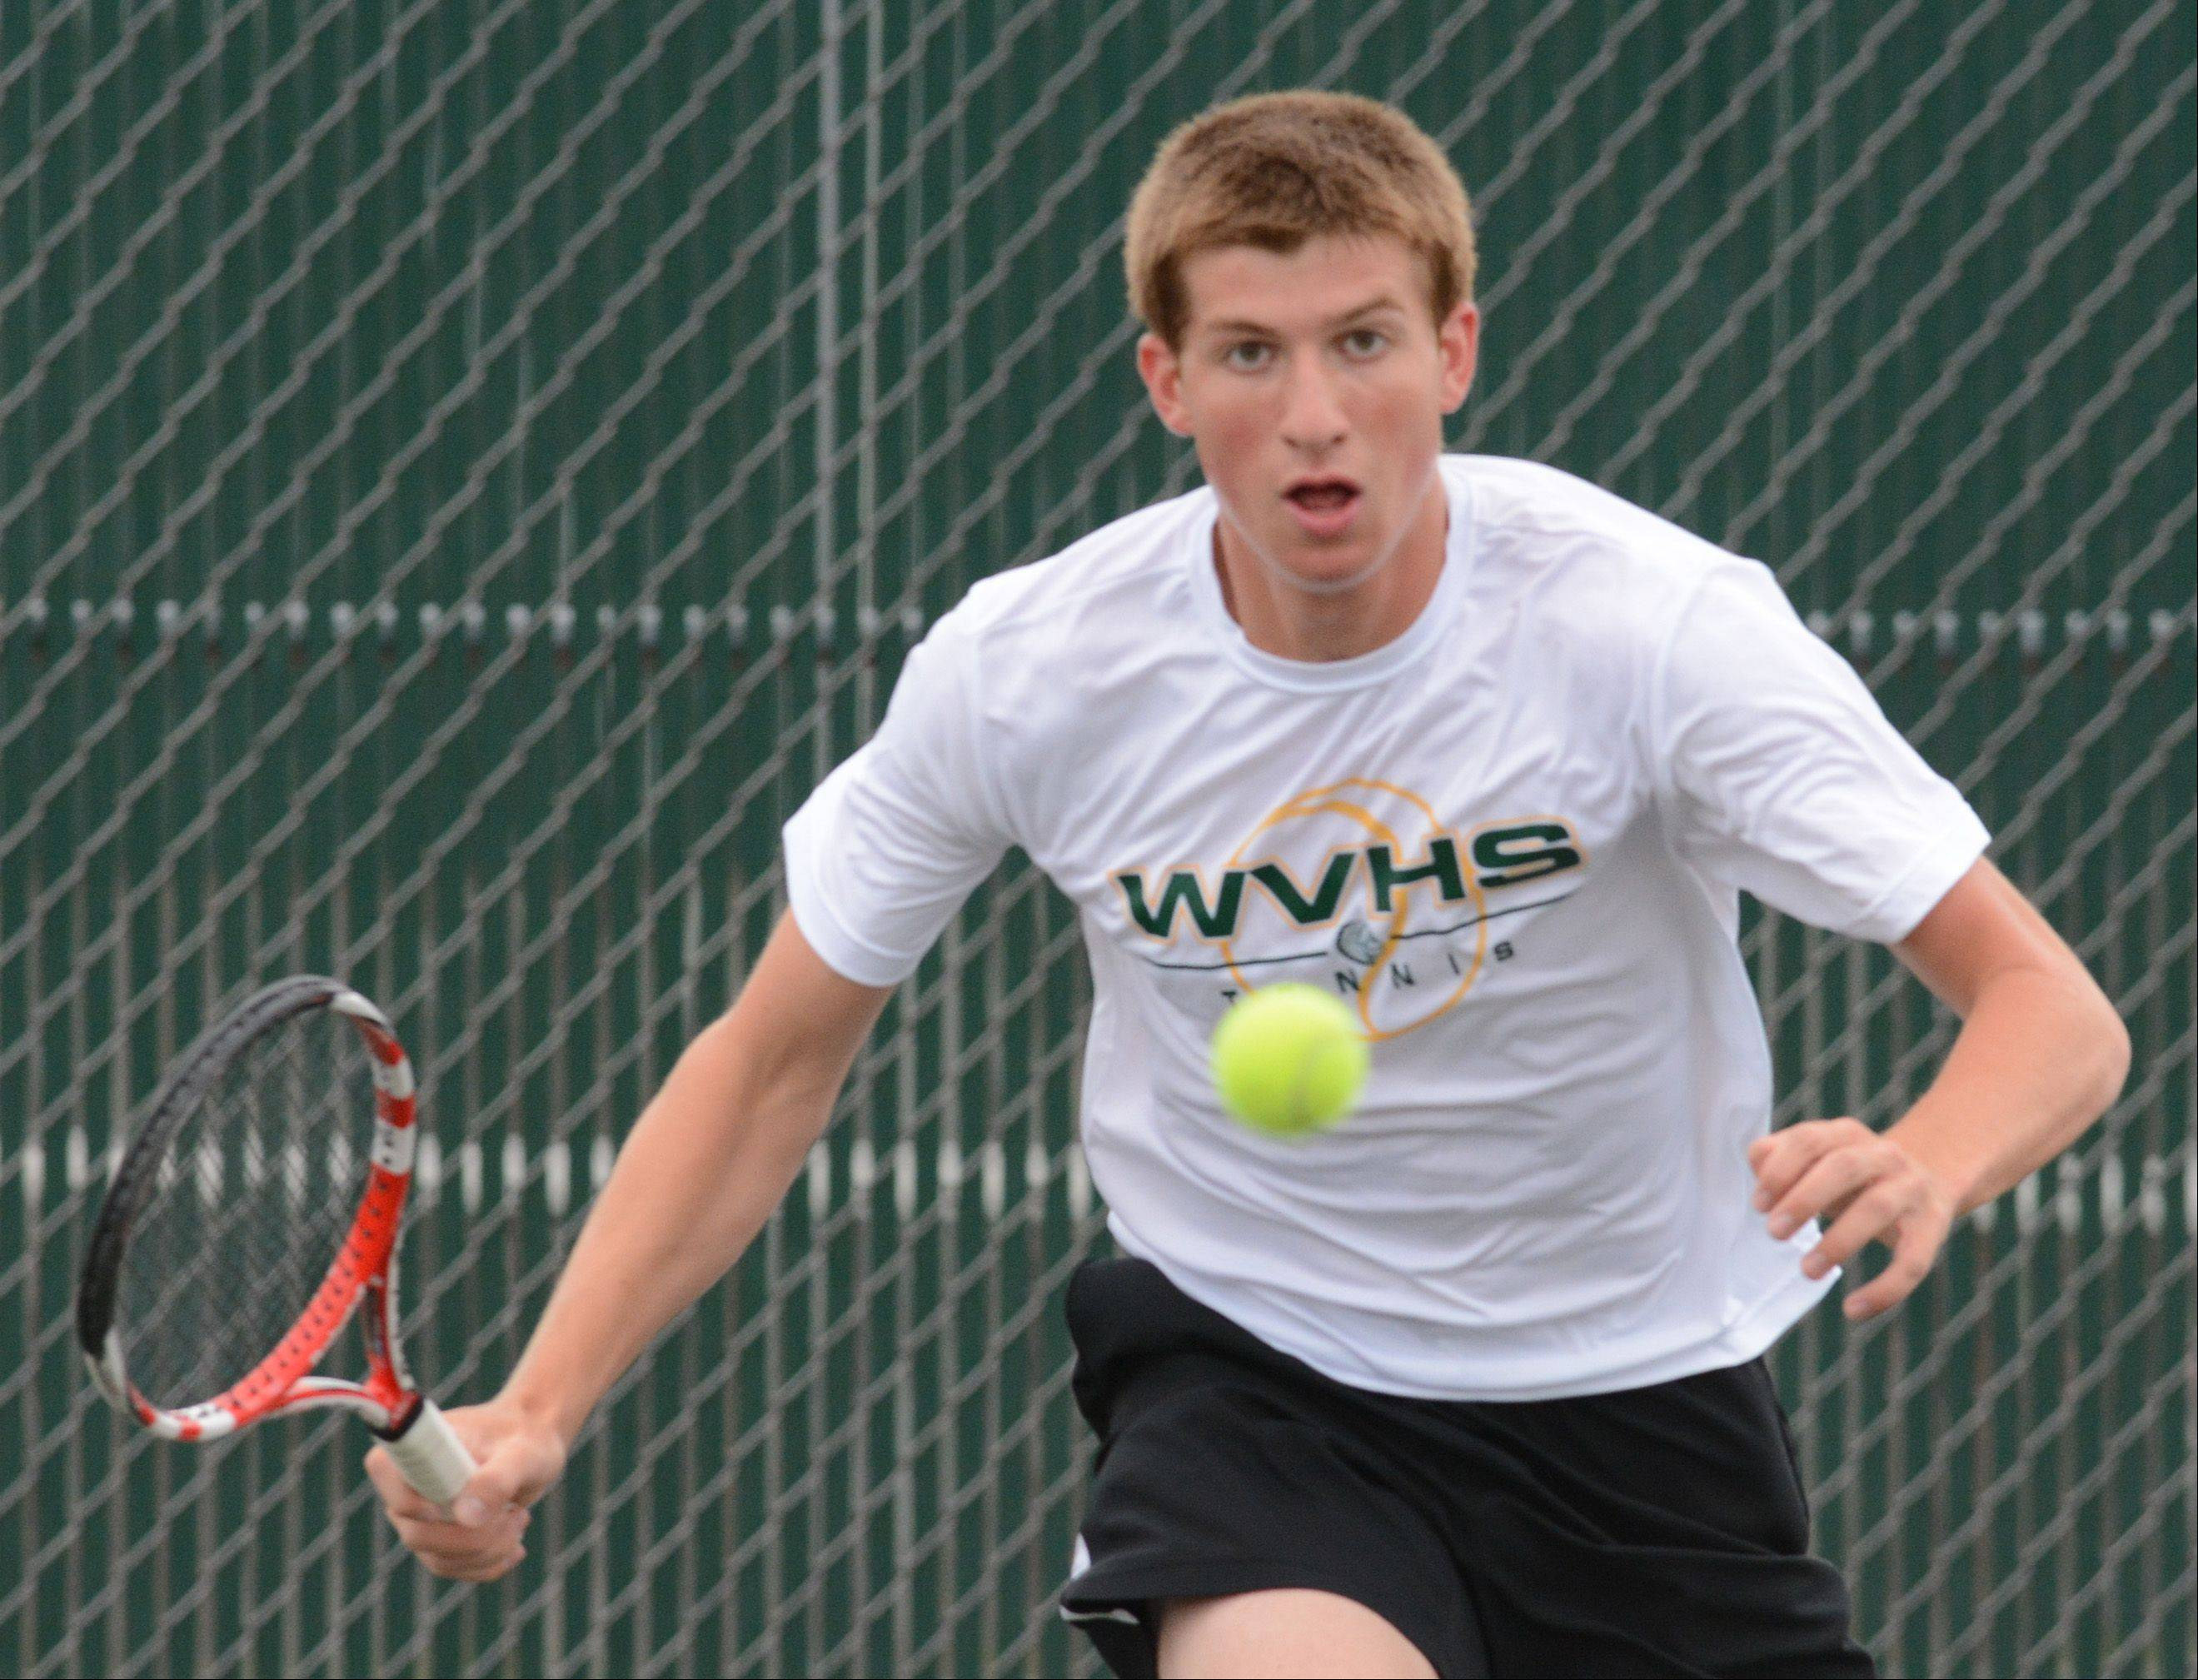 Eric Marbach of Waubonsie Valley competes at the boys tennis state tournament Saturday at Hersey.